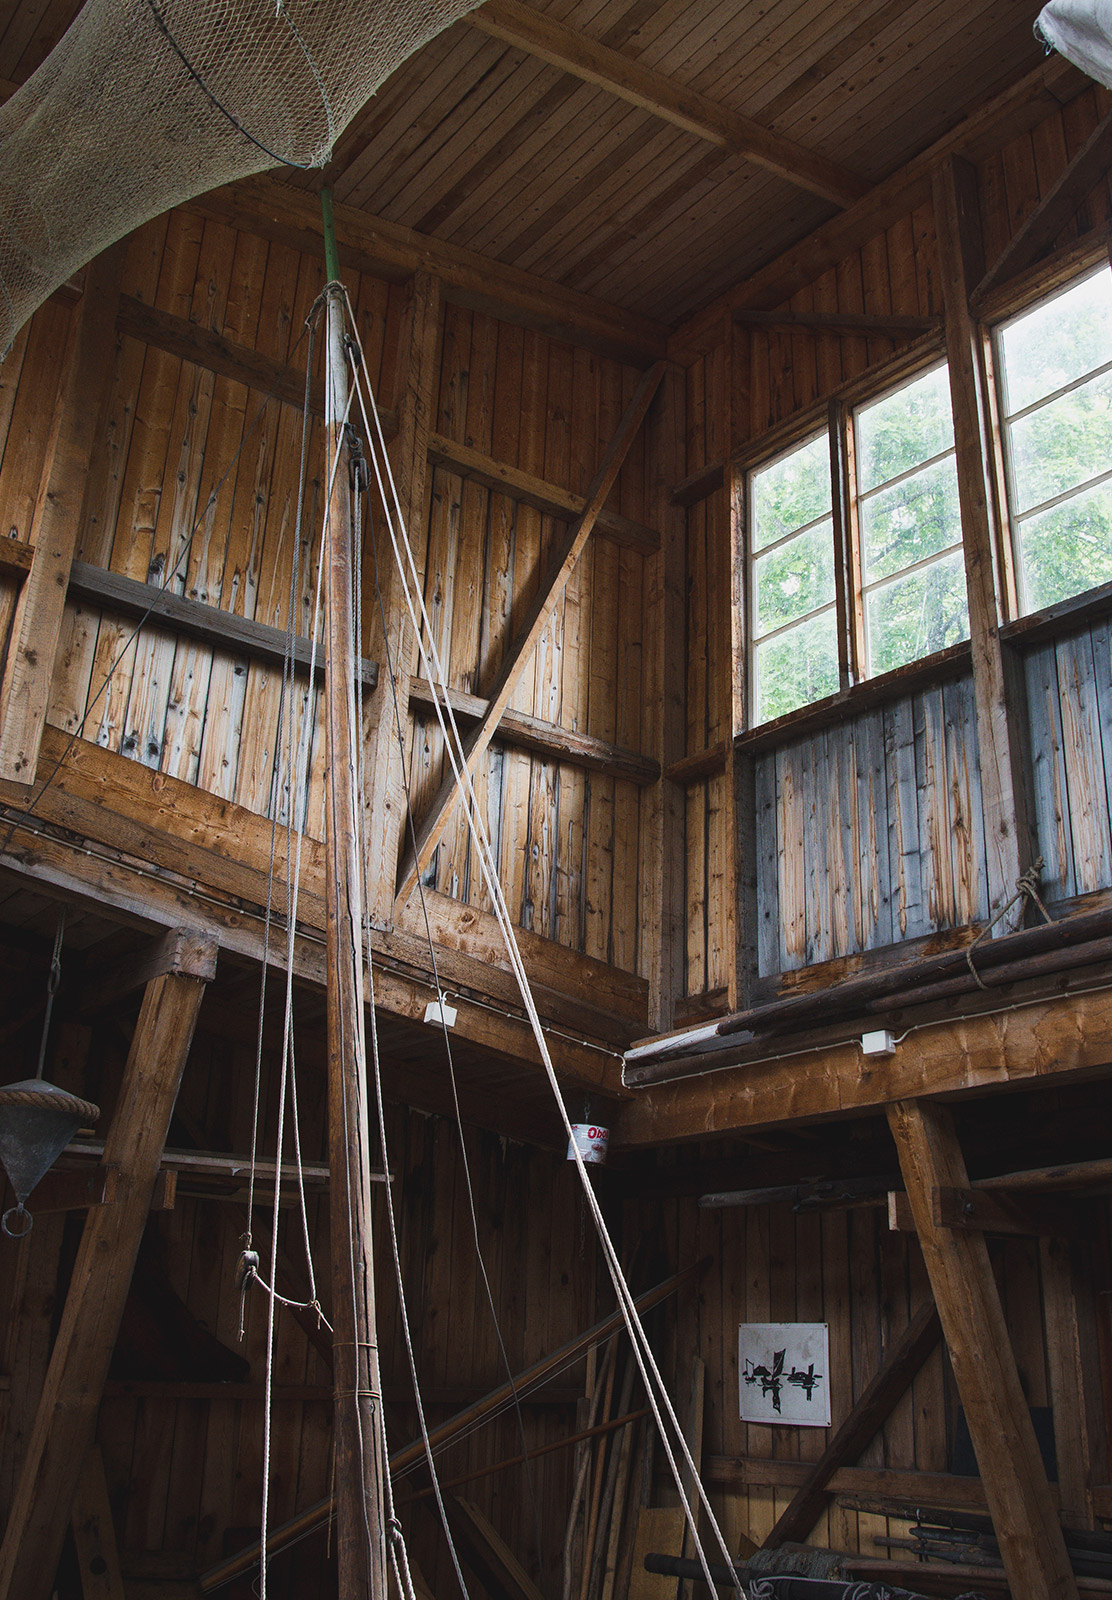 Wooden boat house interior